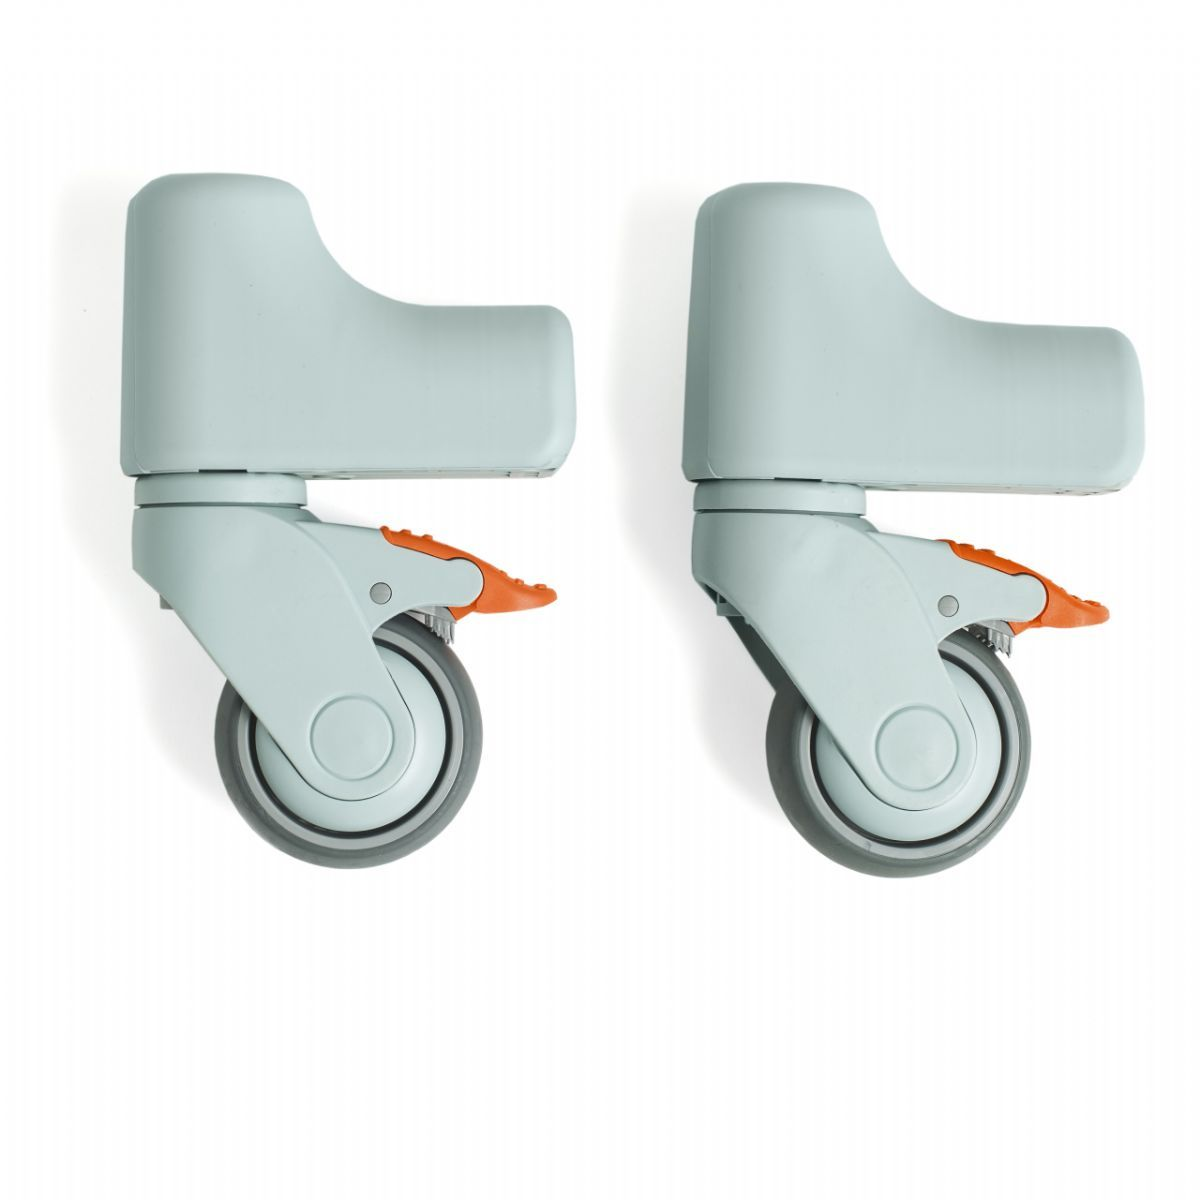 Funky Shower Chairs With Wheels For Disabled Ensign